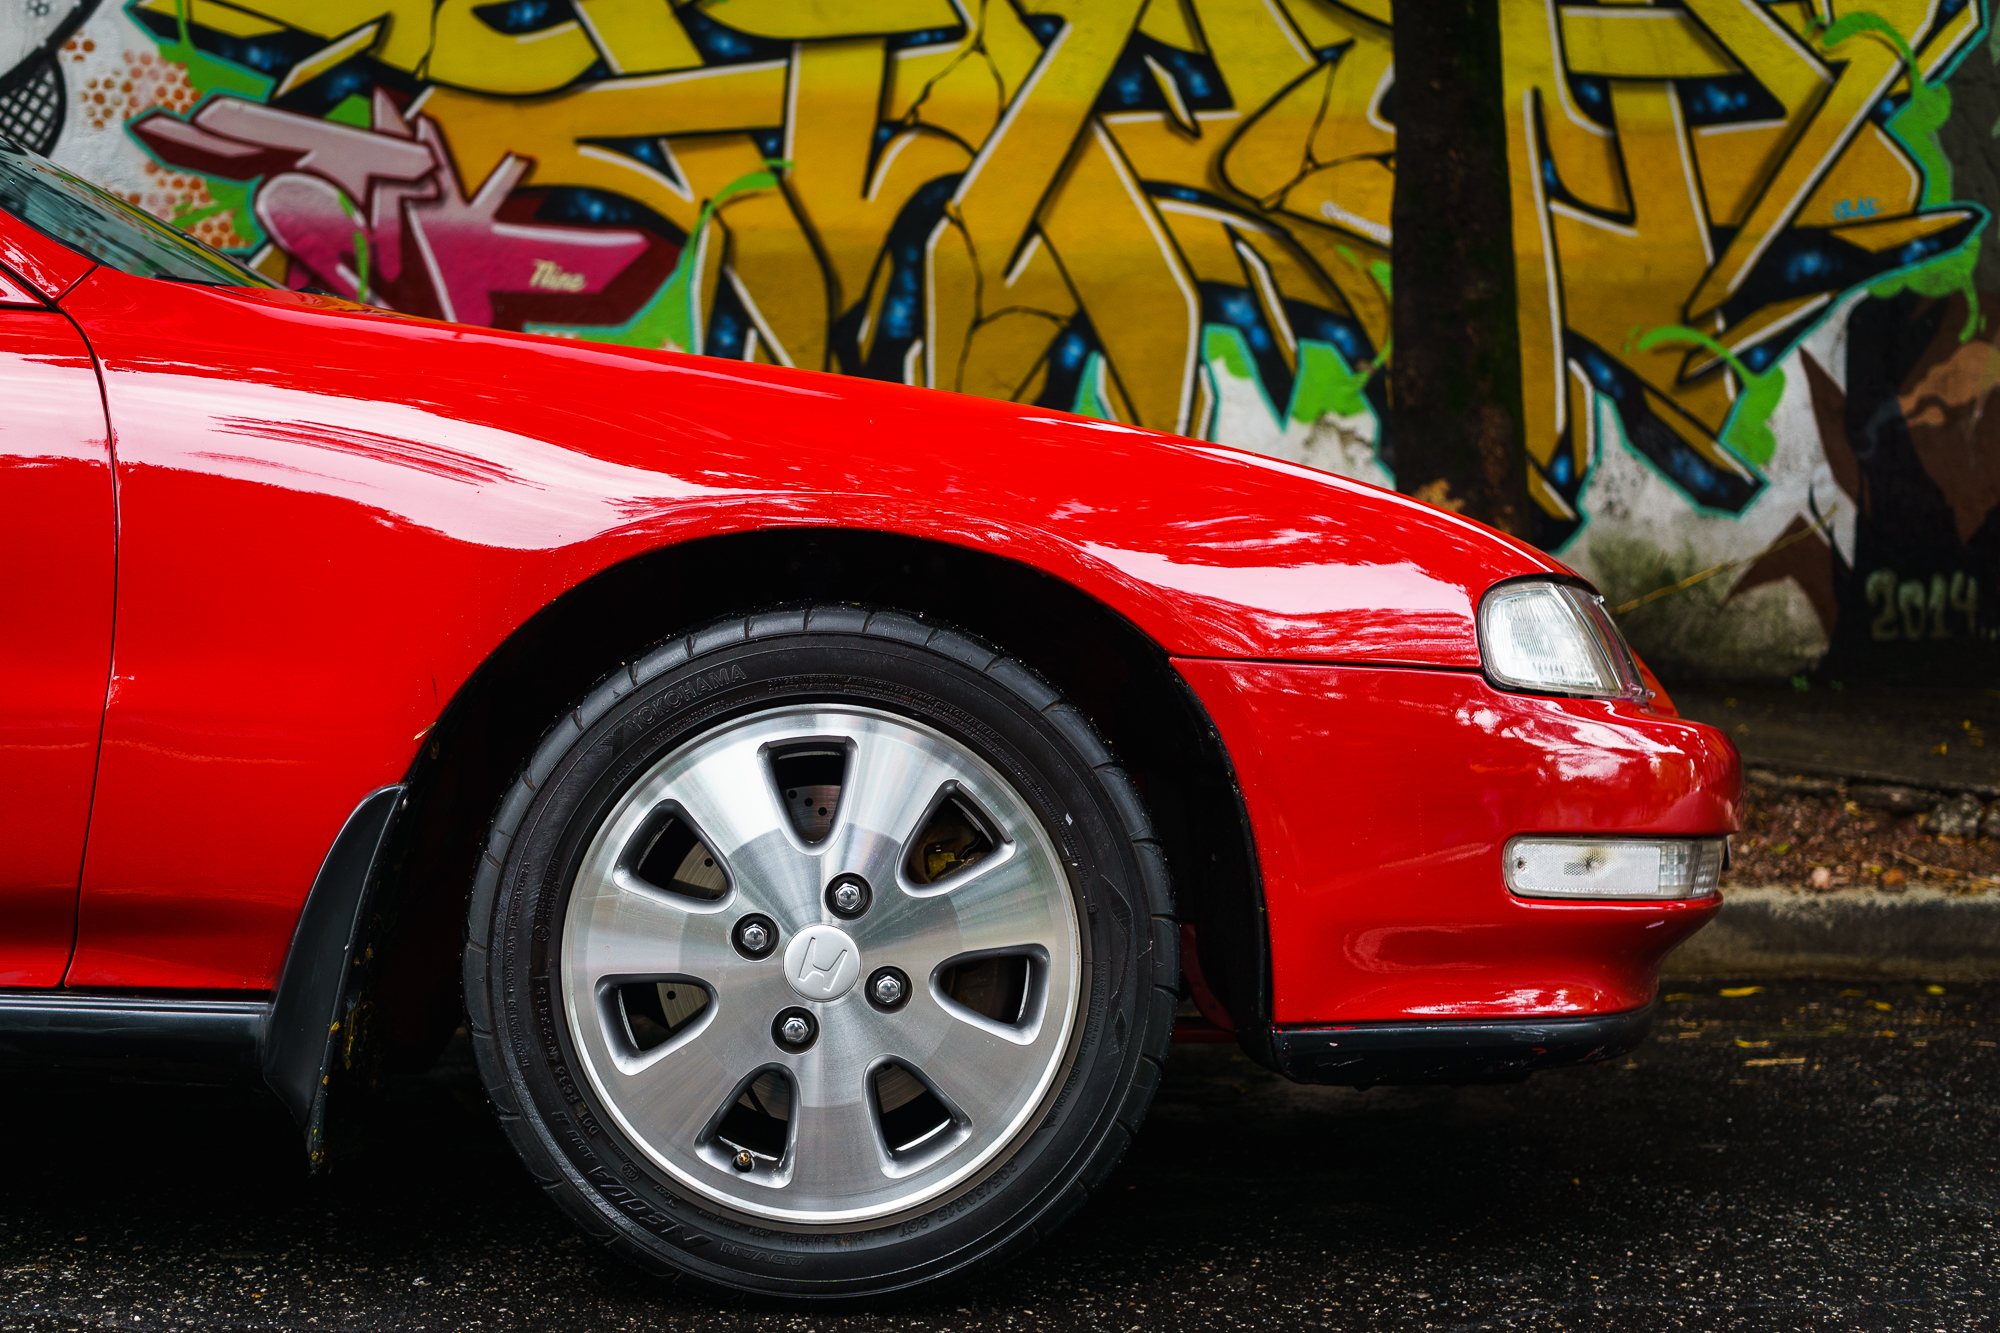 Front Wheel of a Prelude in front of Graffiti